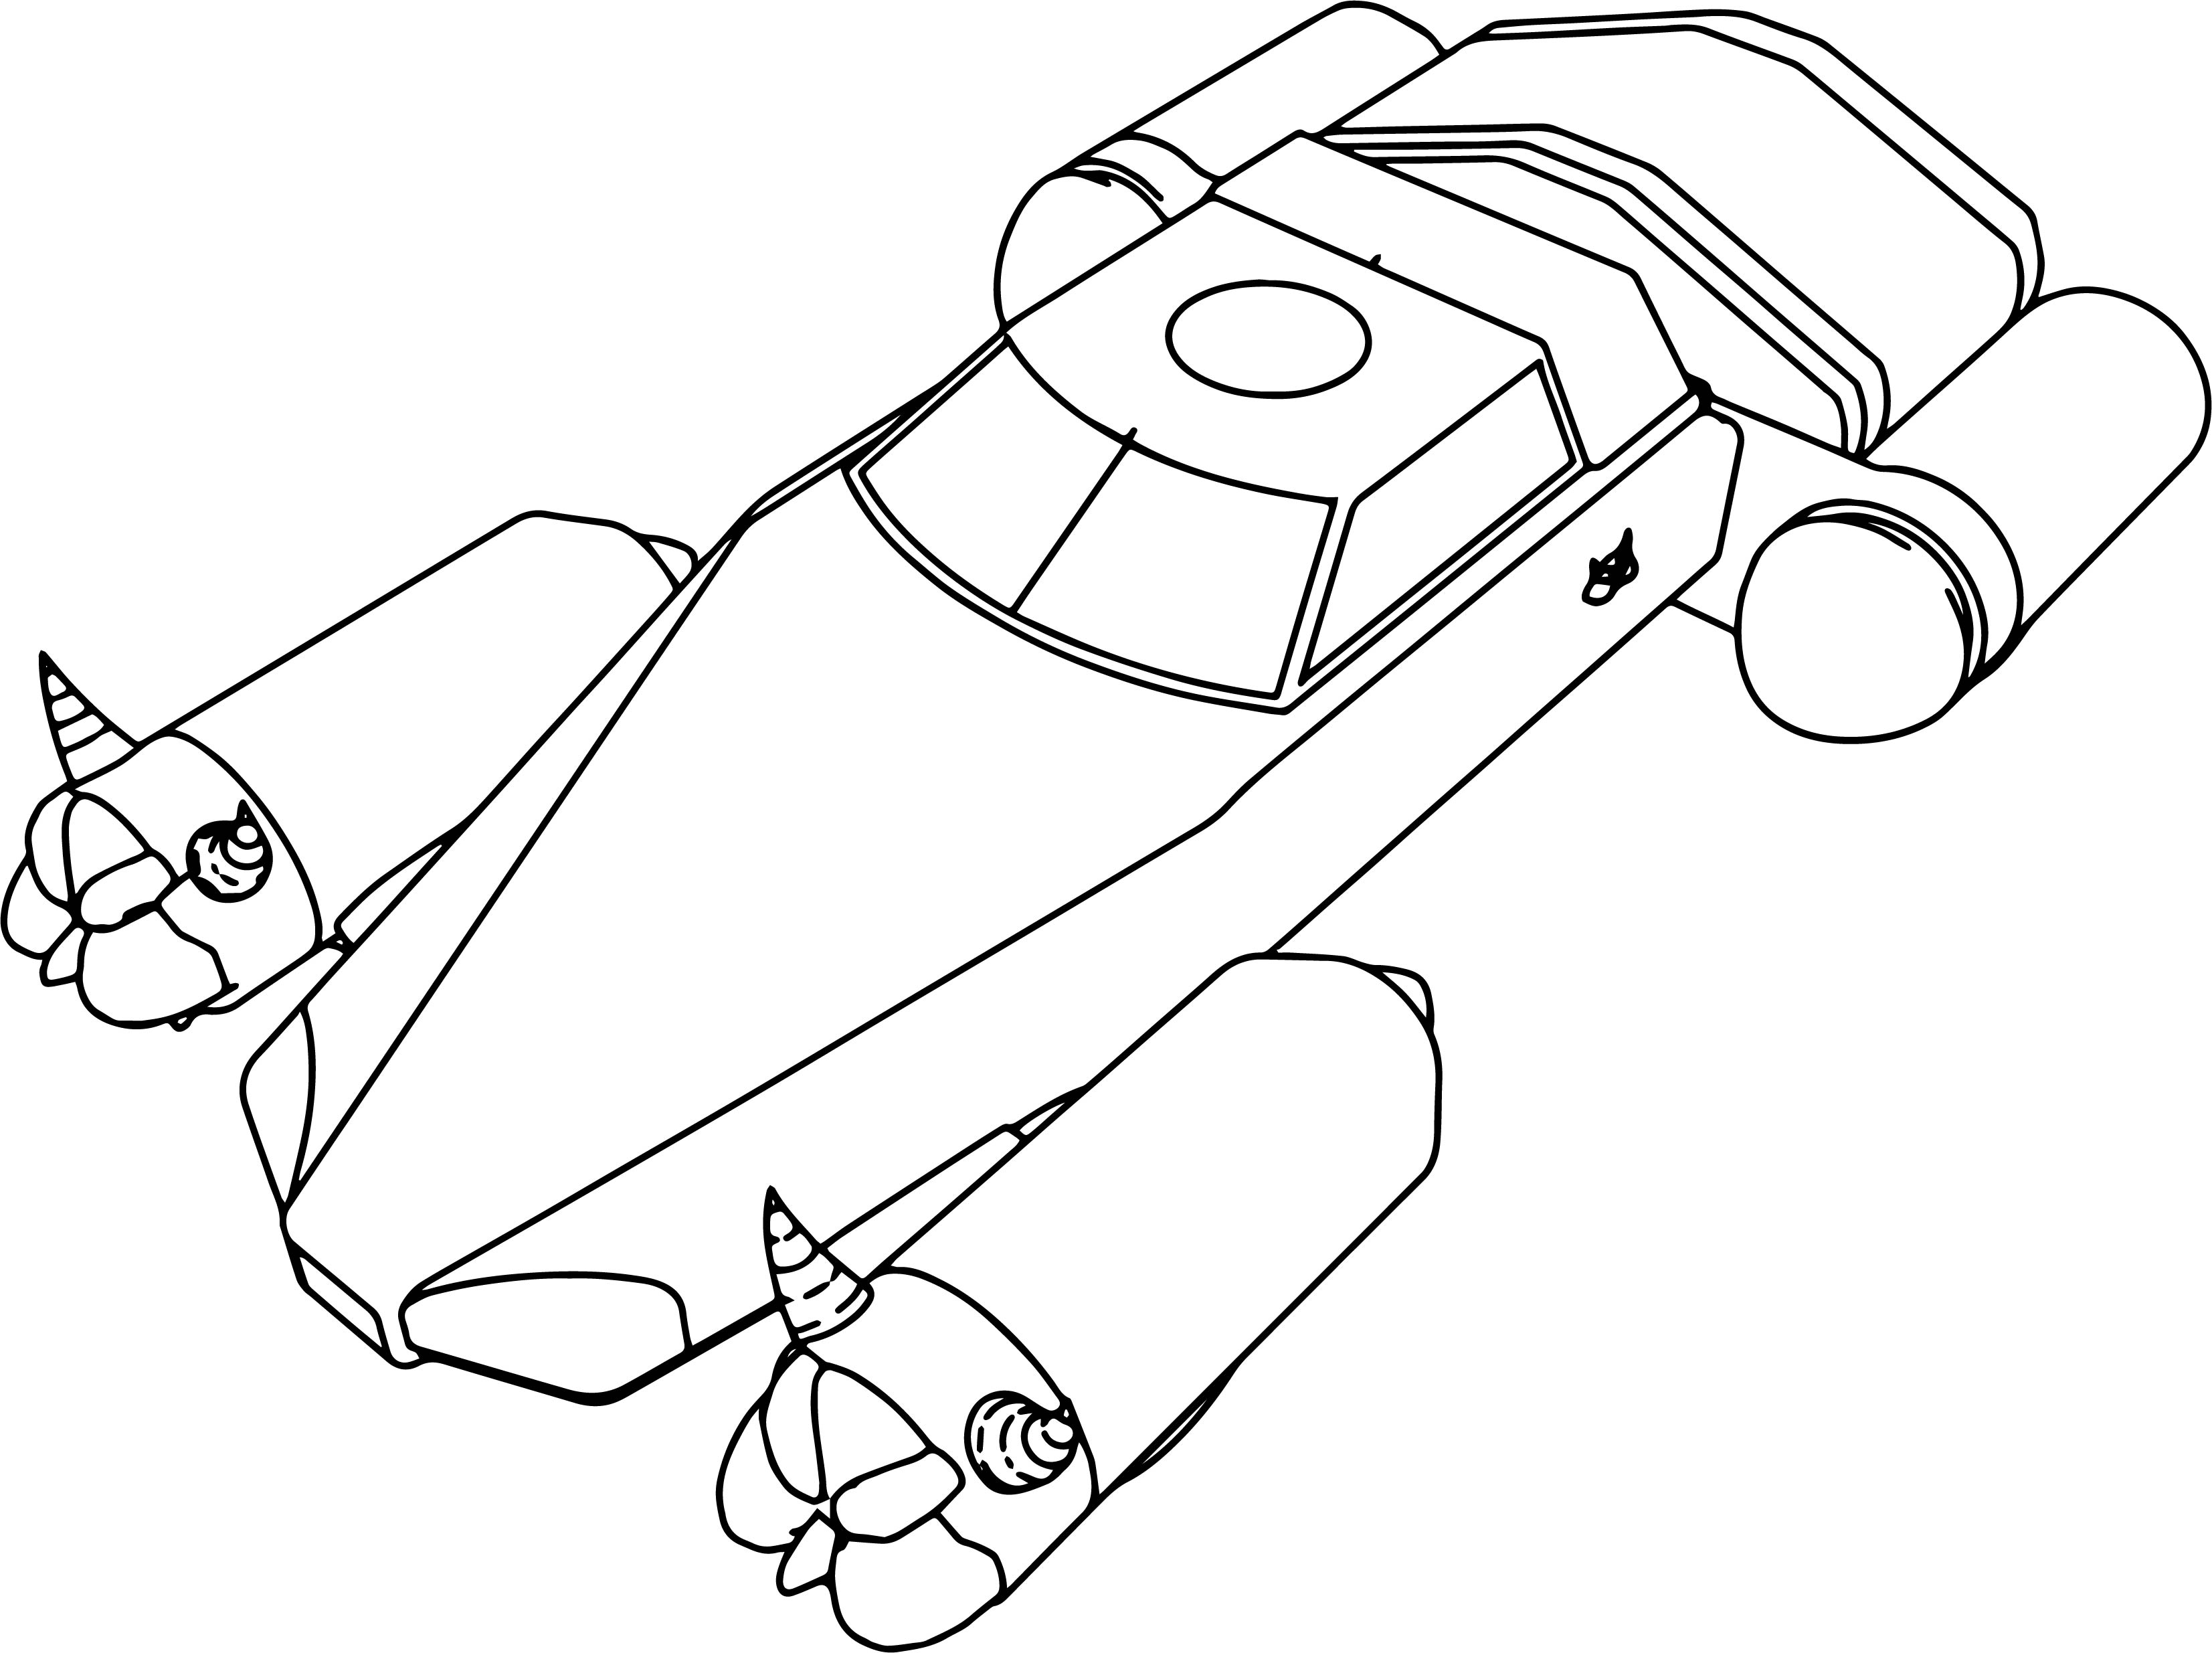 Inspector Gadget Dr Claws Madmobile Jet Sub Coloring Page